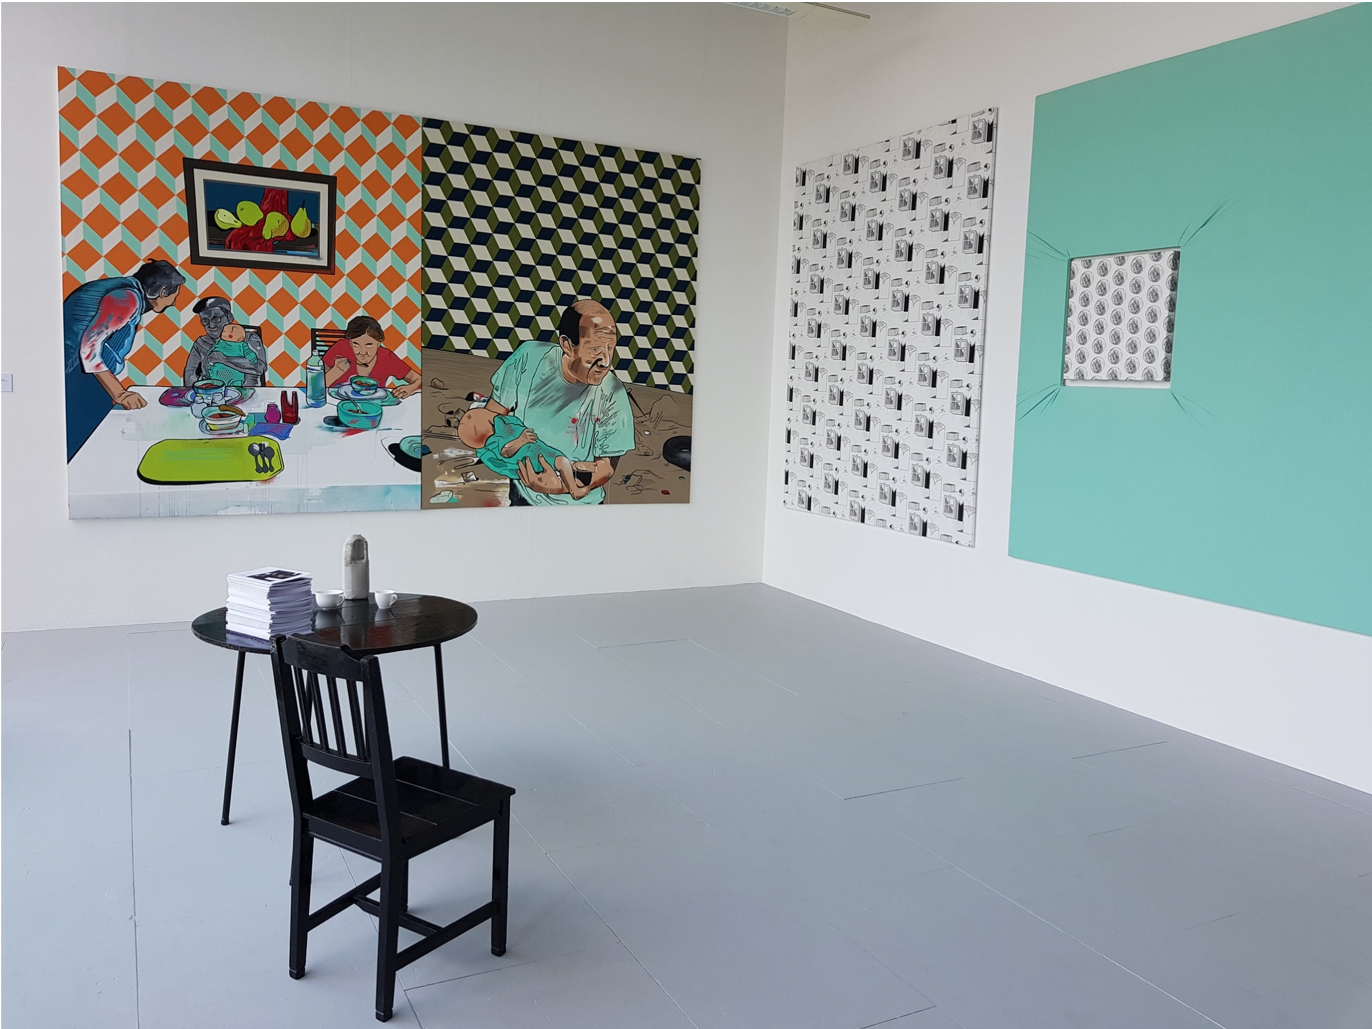 installation photo with multiple paintings on walls